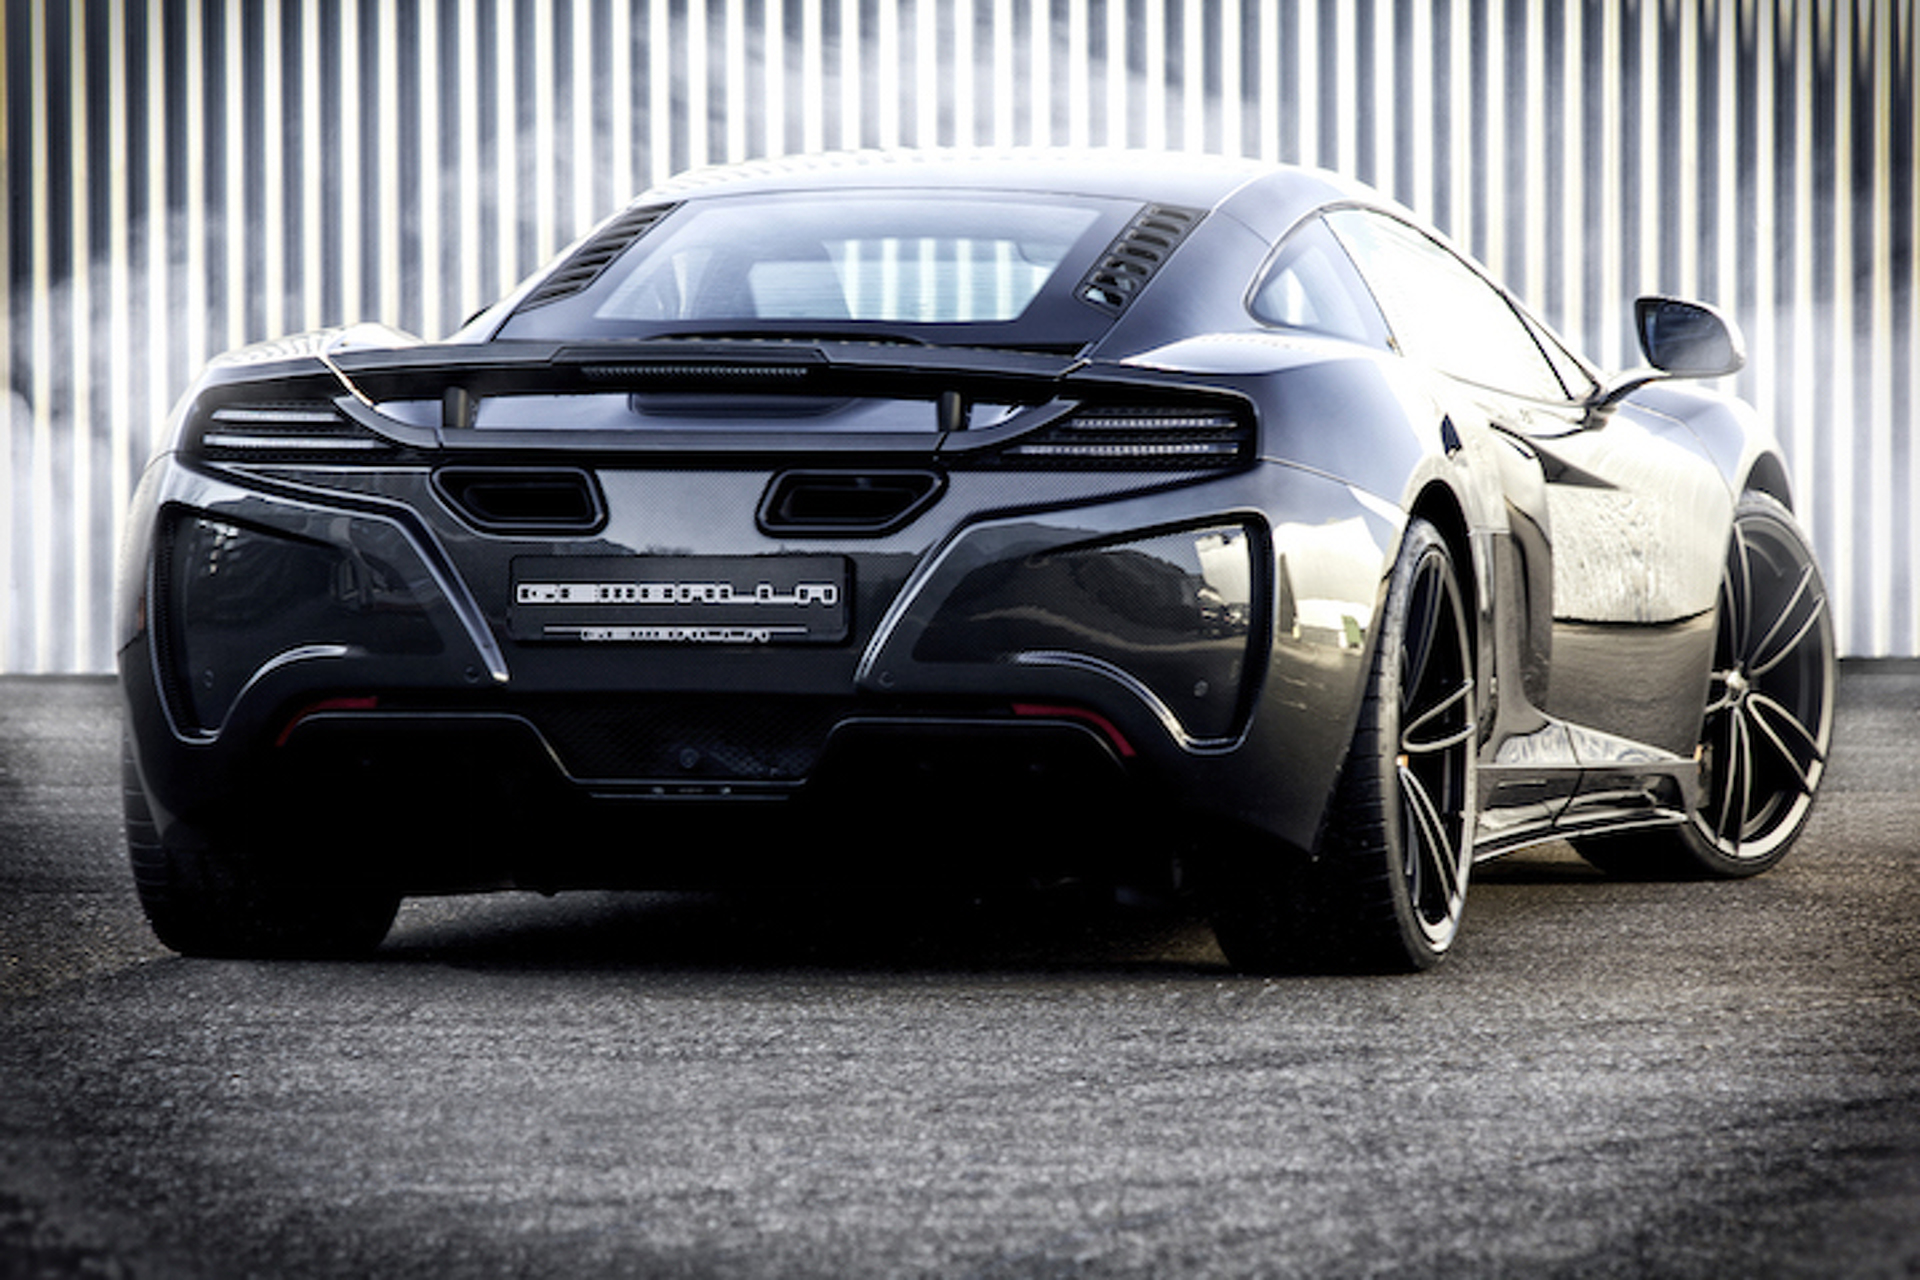 Gemballa Gives the McLaren 650S More Power, Sleeker Looks